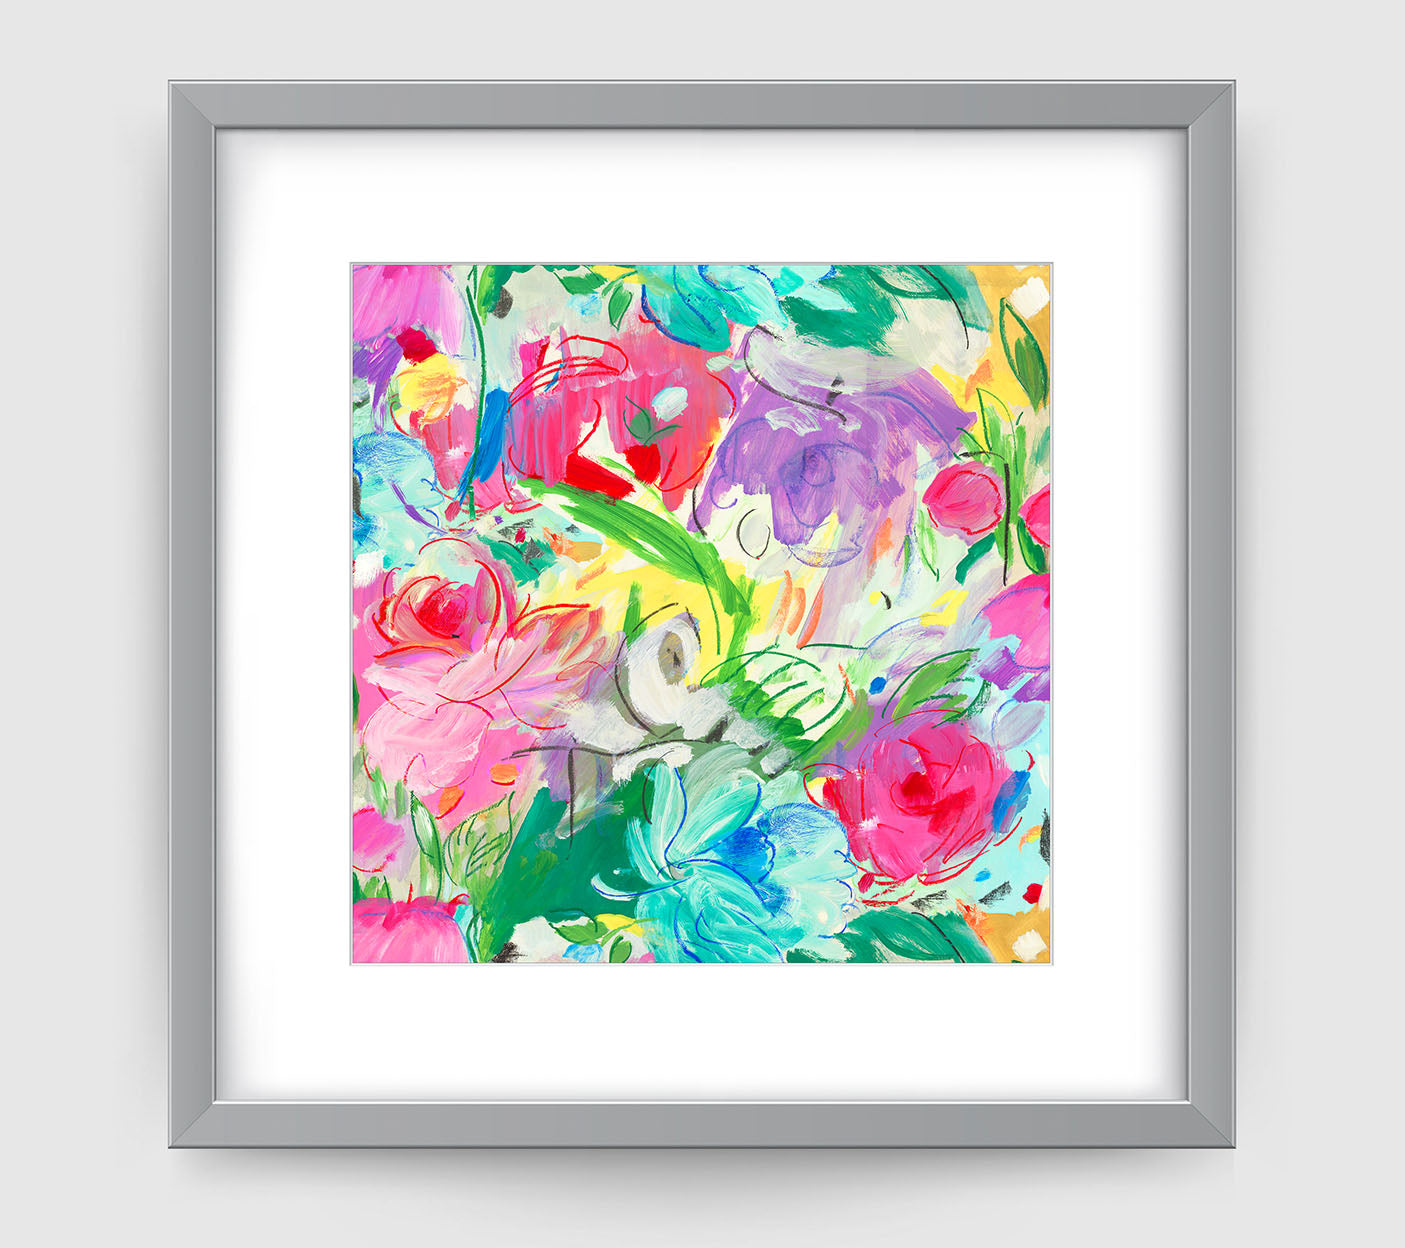 Printemps Art Print - Impressionist Art Wall Decor Collection-Di Lewis